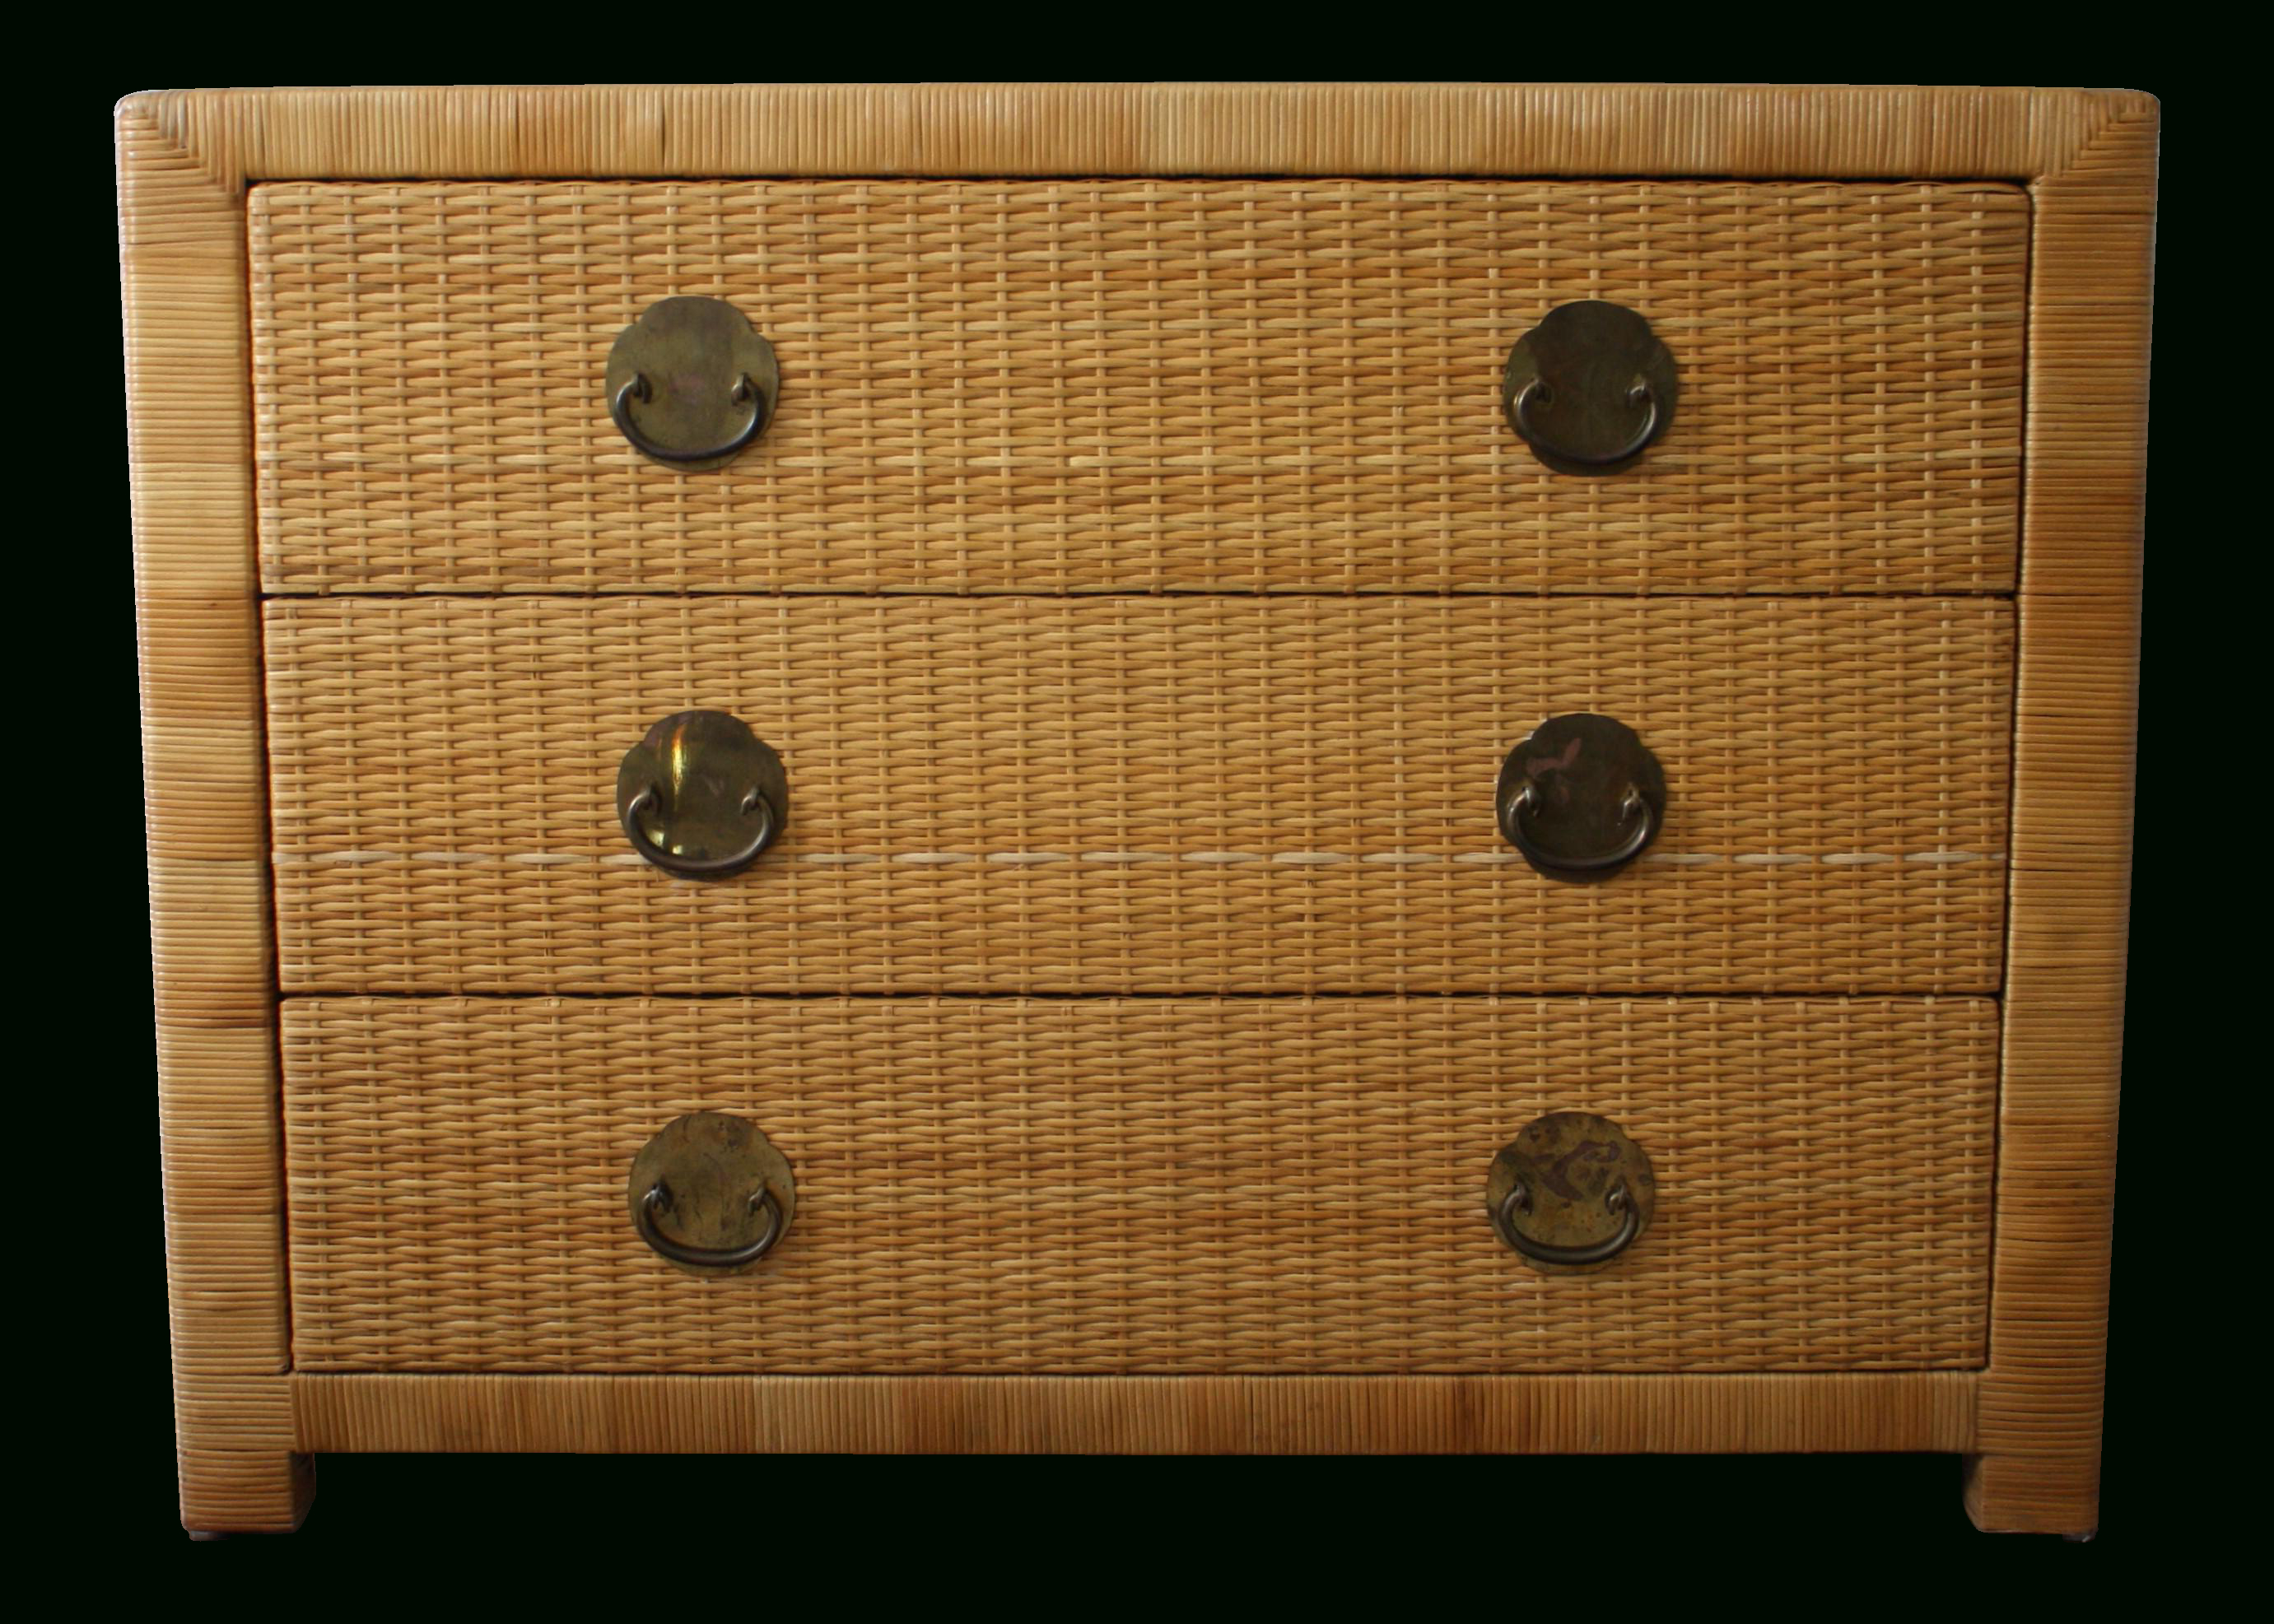 This Vintage Natural Wicker And Rattan Chest Of Drawers Comes With 3 Pertaining To Natural Cane Media Console Tables (Gallery 11 of 20)